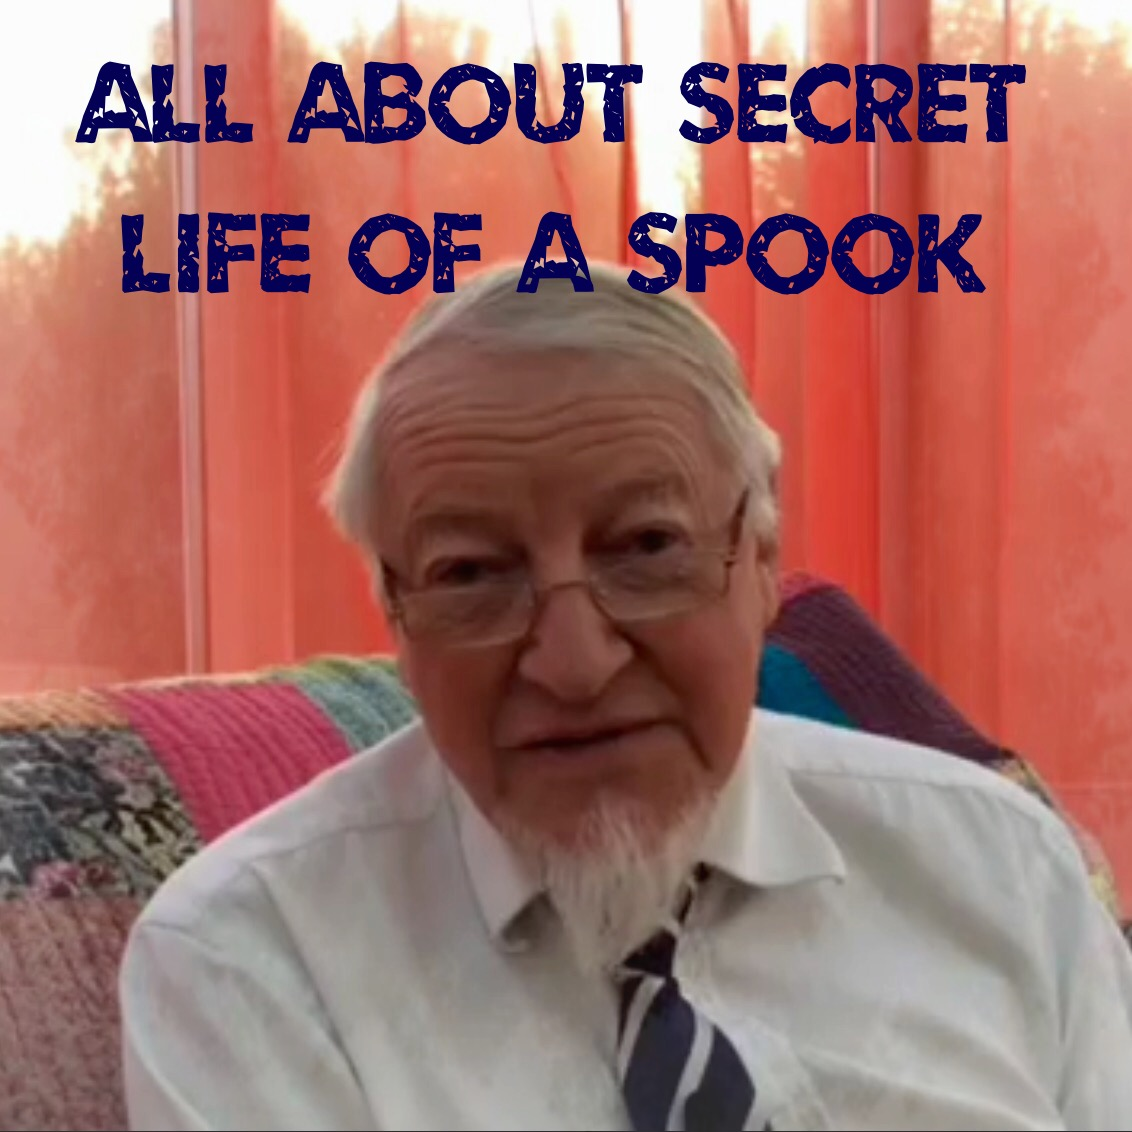 VIDEO: About Secret Life of a Spook